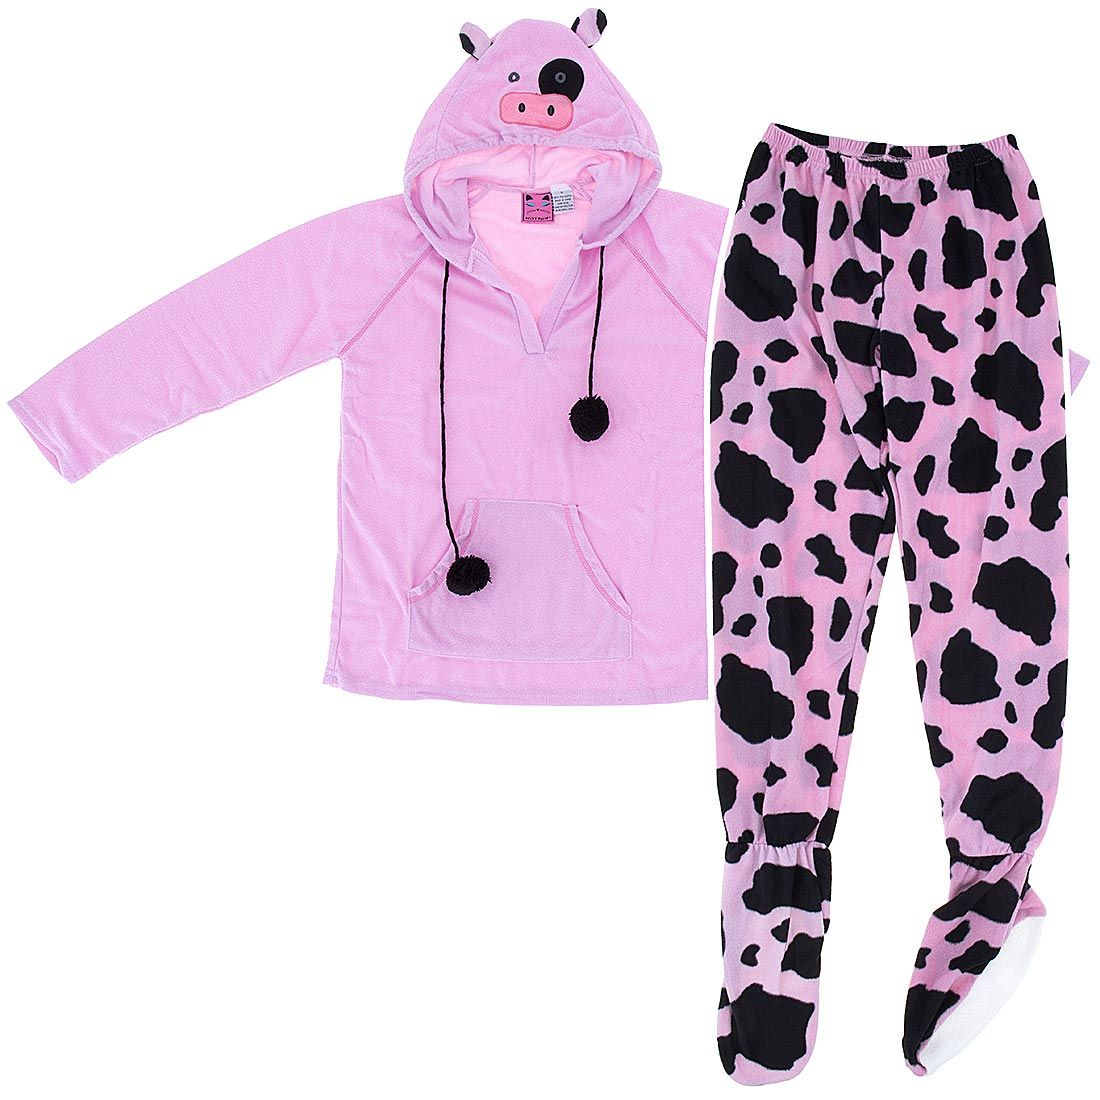 85d1562826b1 Cow Two-Piece Hooded Footed Pajamas for Women - Click to enlarge ...